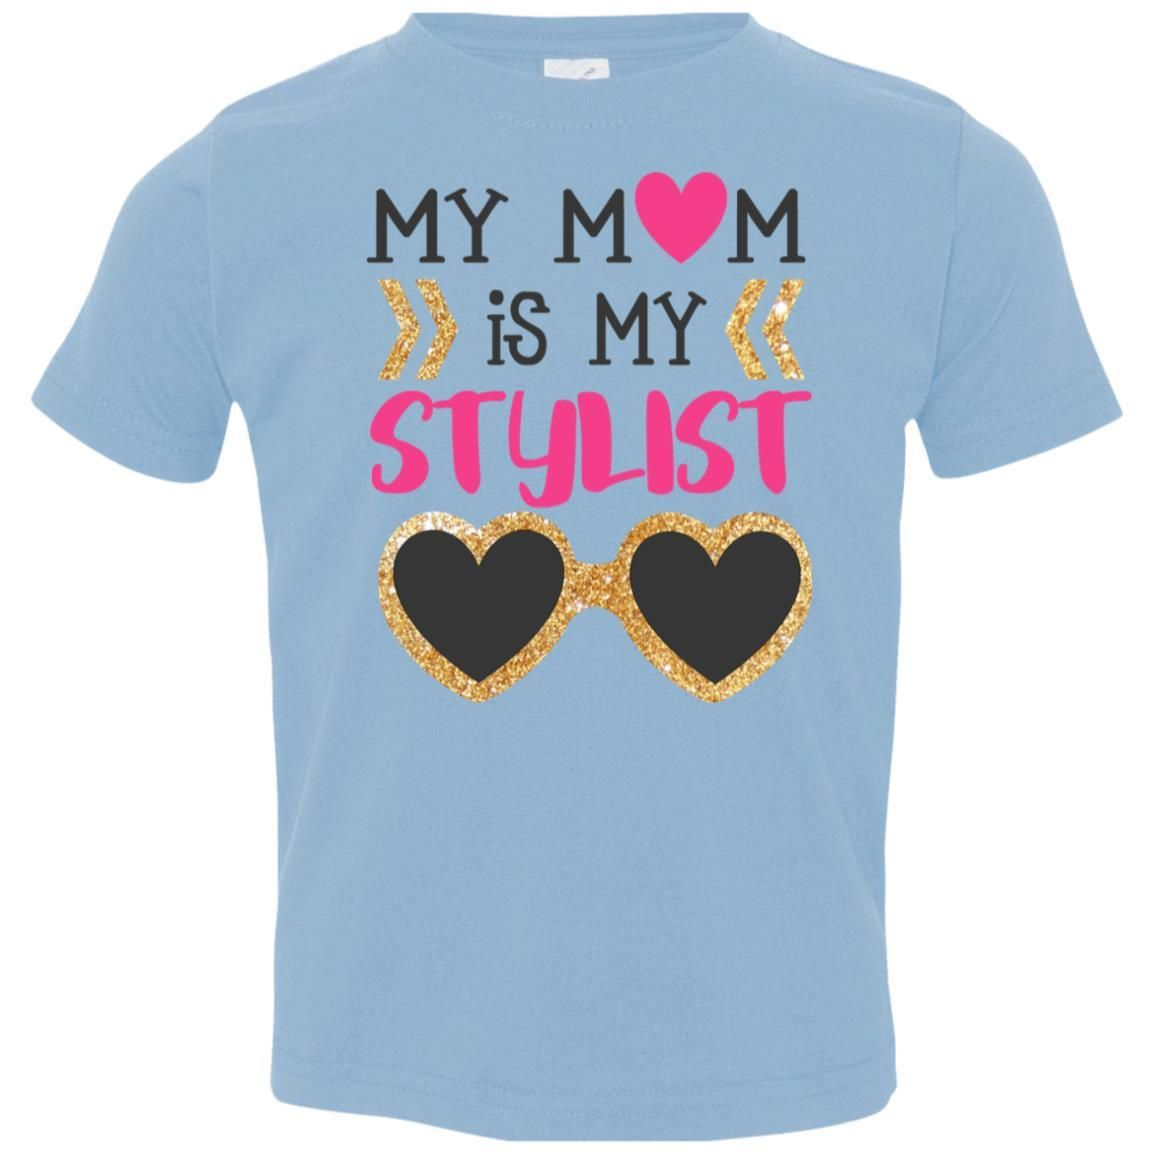 My Mom Is My Stylist Toddler T Shirt Toddler Tshirts T Shirt Toddler